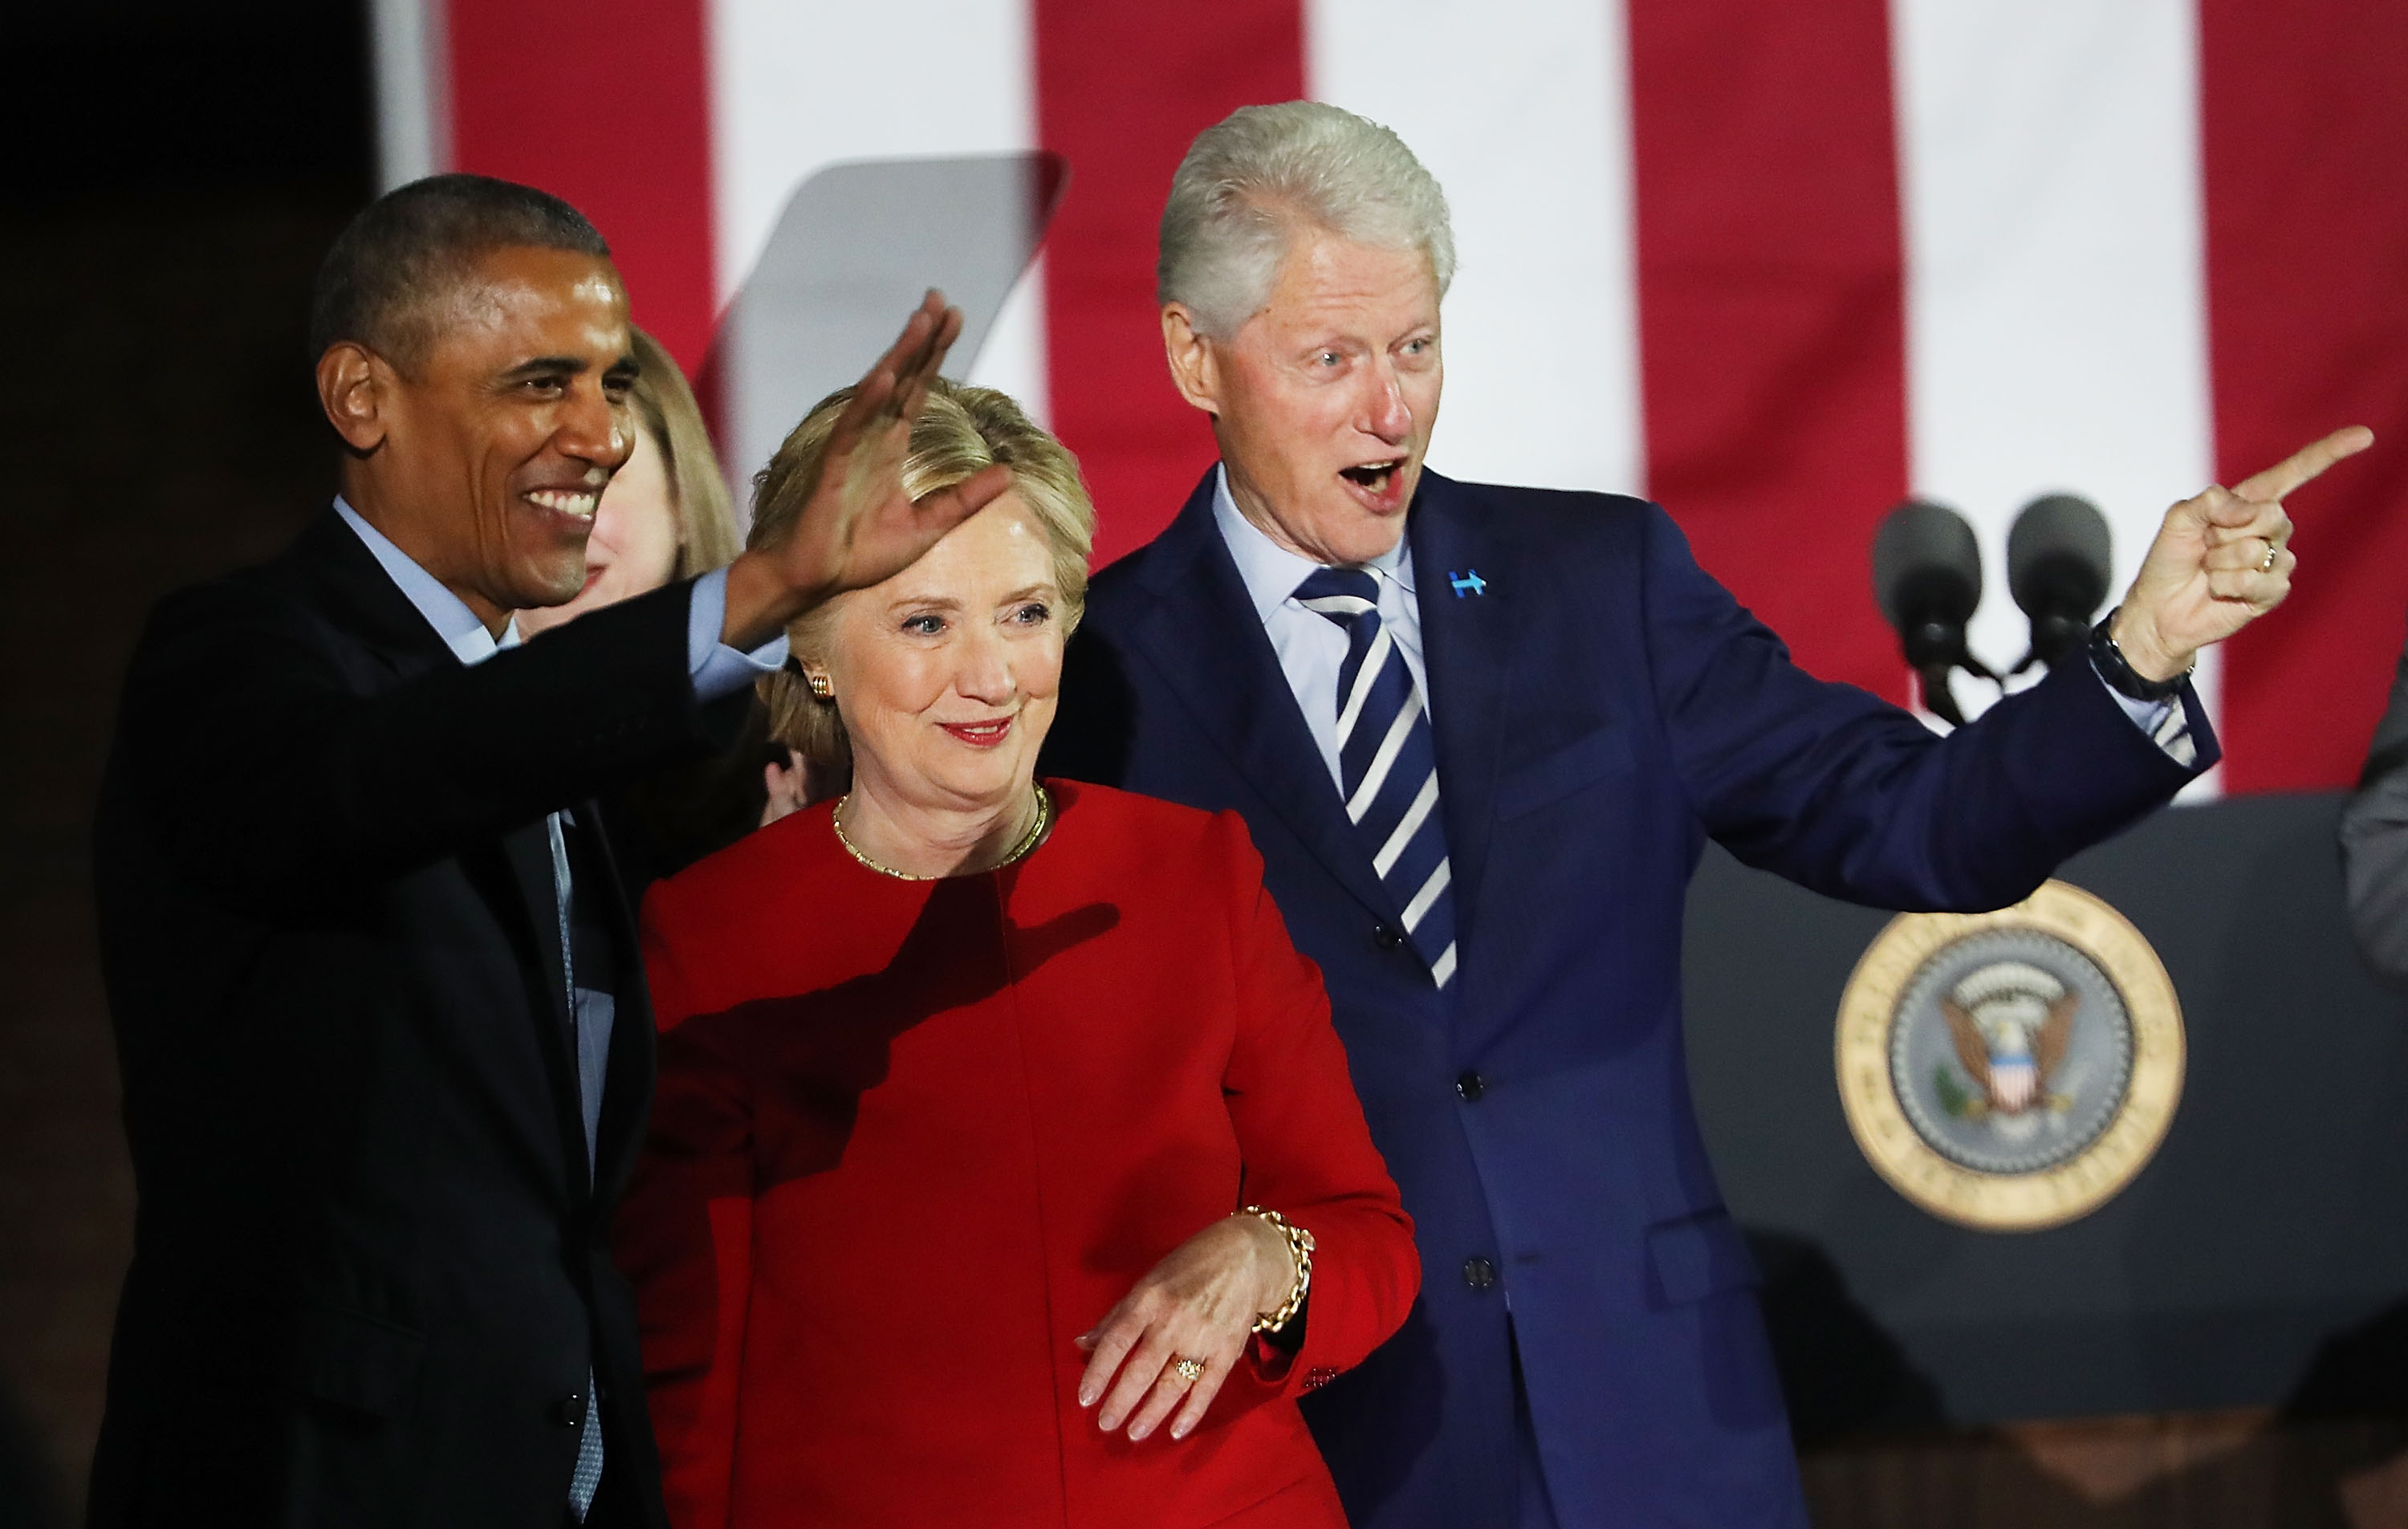 Hillary Clinton stands with President Barack Obama and former President Bill Clinton during an election eve rally on November 7, 2016 in Philadelphia, Pennsylvania. As the historic race for the presidency of the United States comes to a conclusion, both Clinton and her rival Donald Trump are making their last appearances before voting begins tomorrow. (Photo by Spencer Platt/Getty Images)